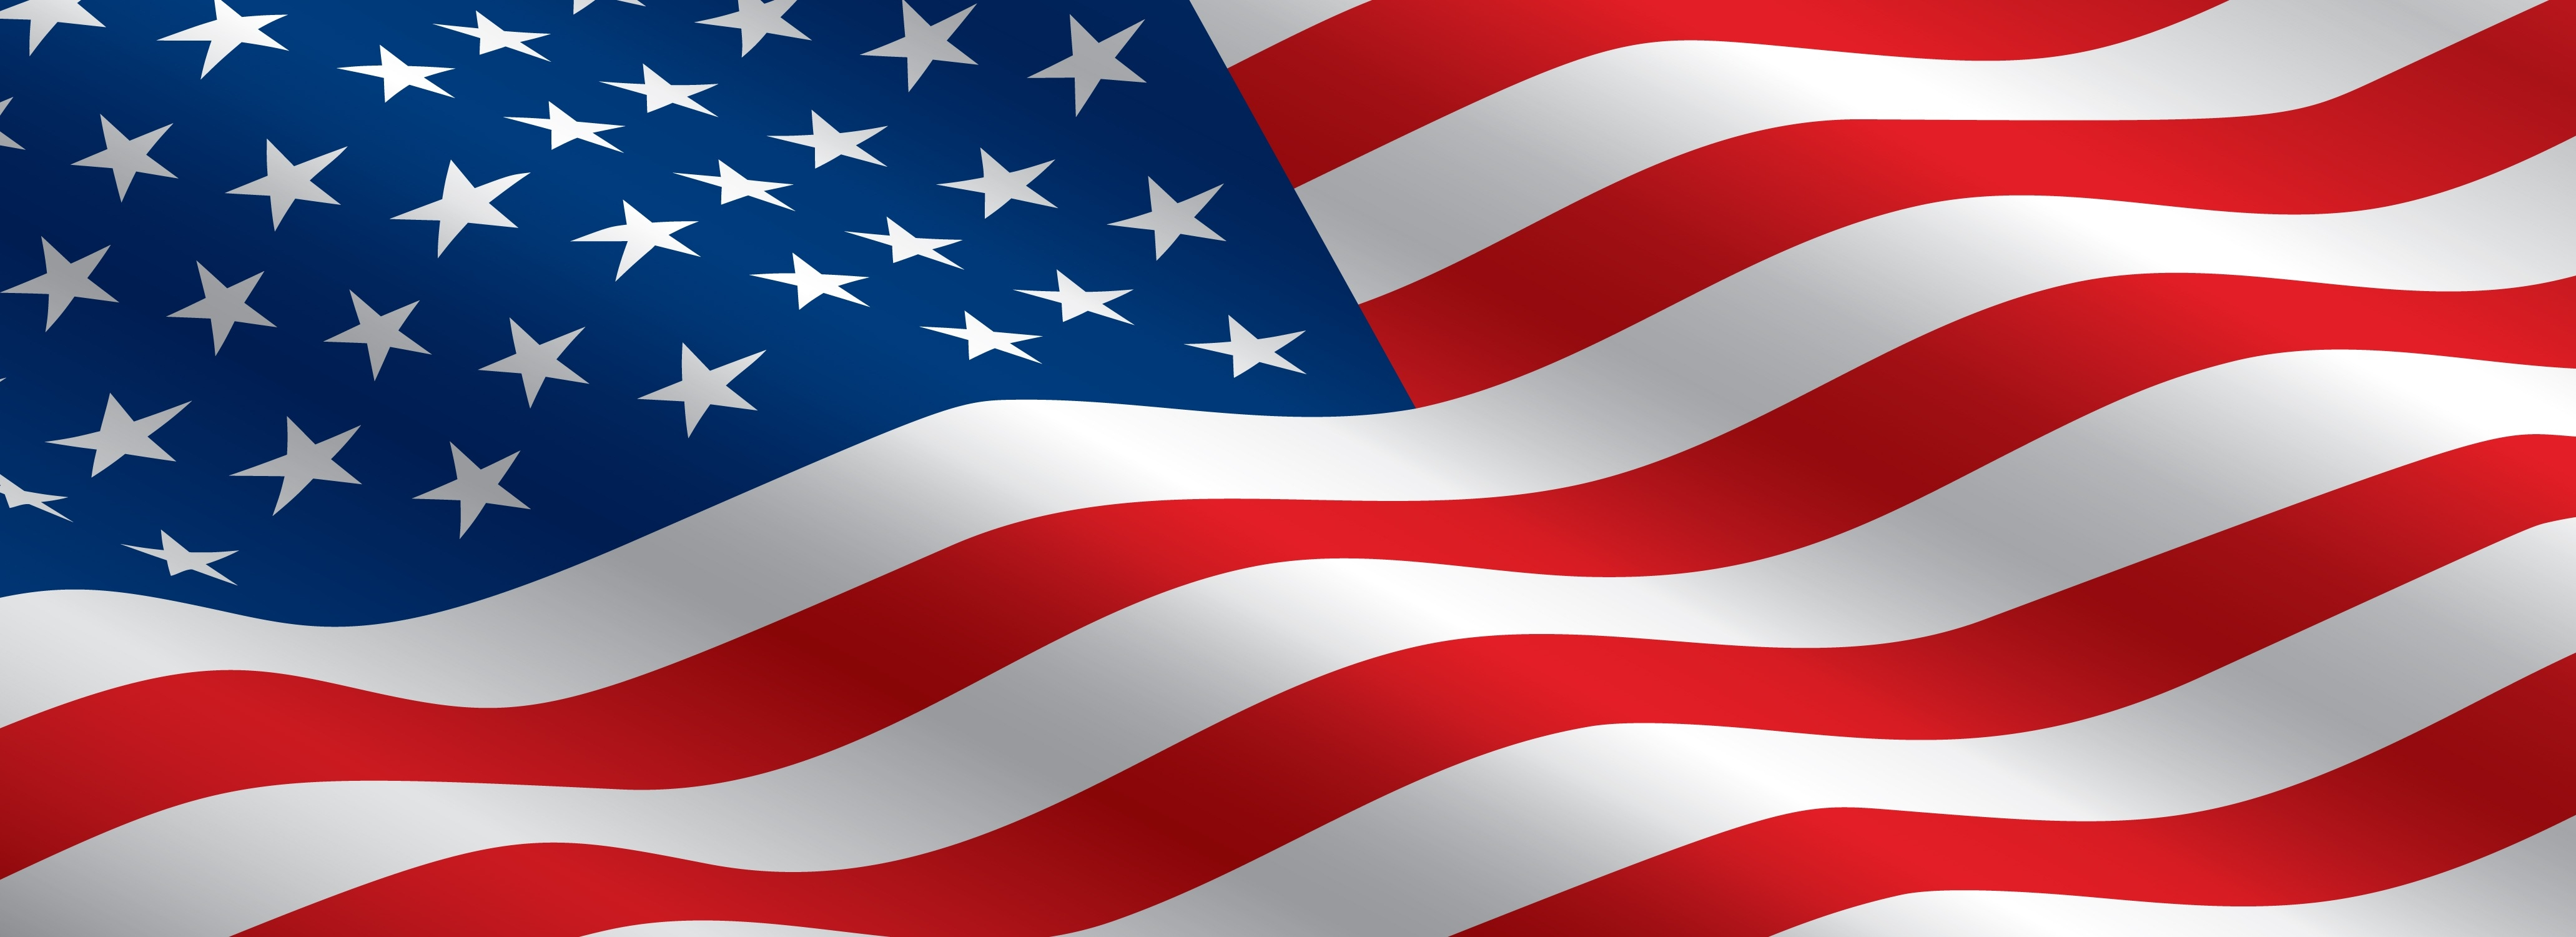 Best business template us. Banners clipart american flag